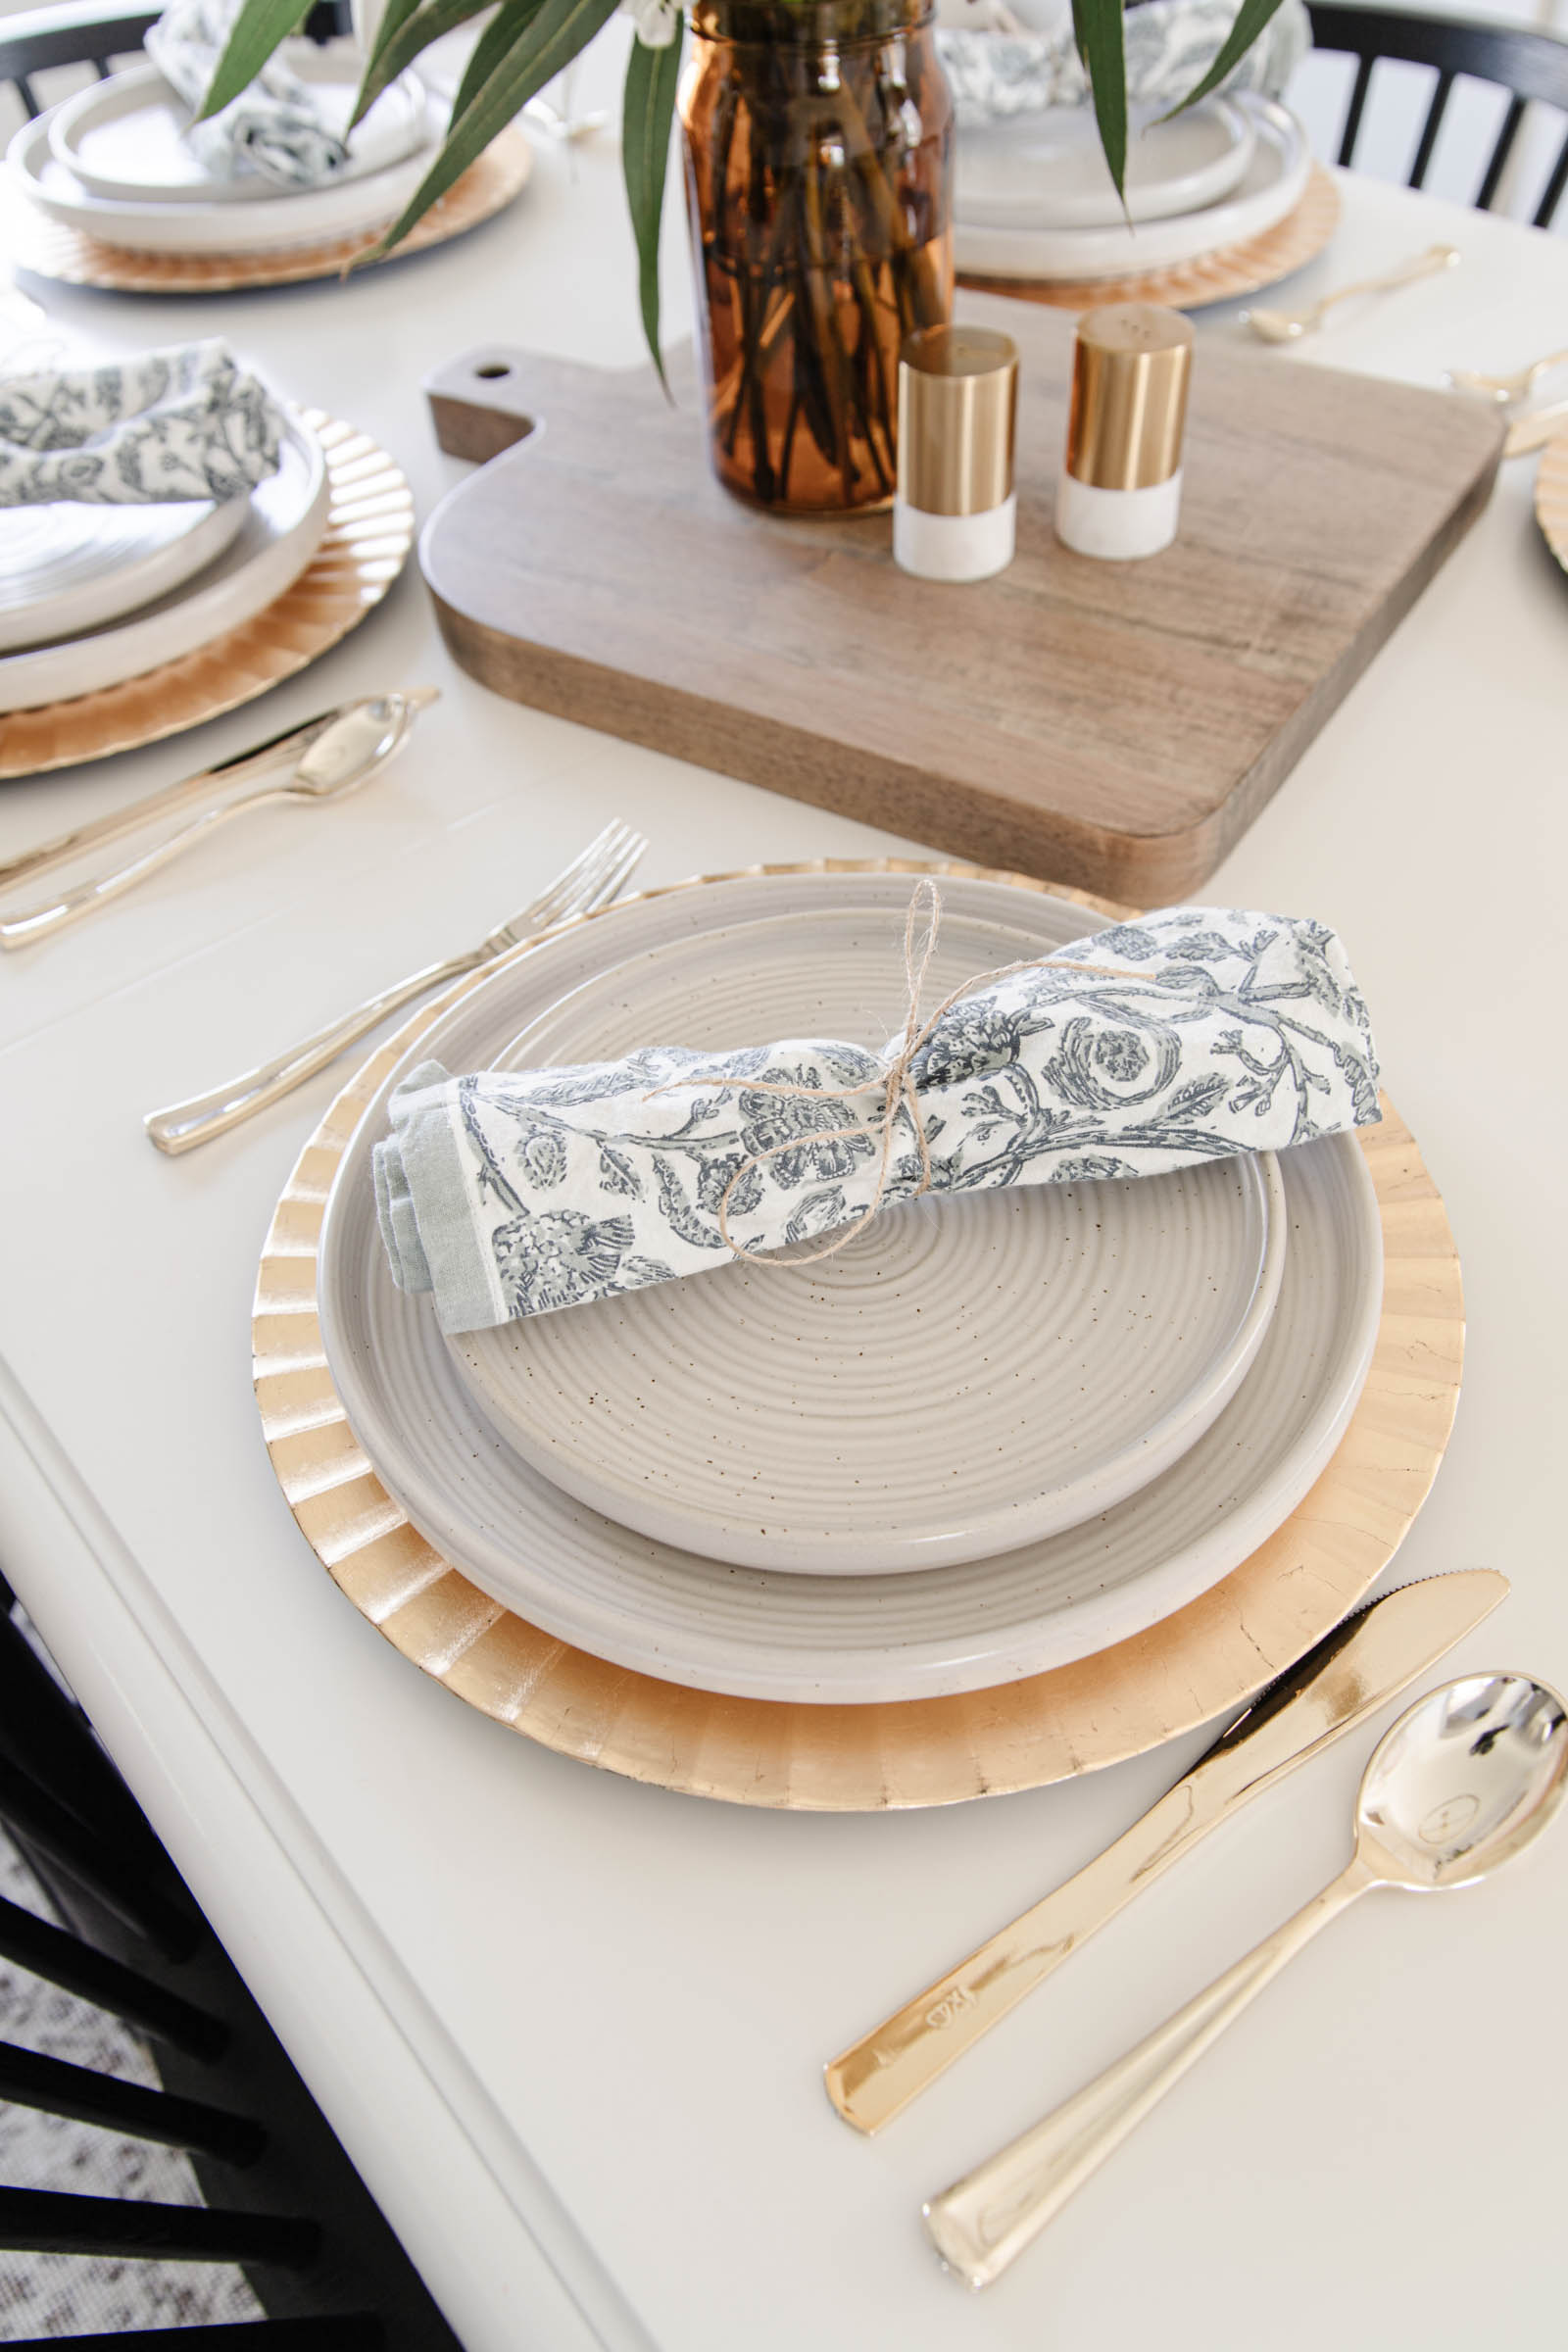 close up of plate charge, dinner plate, salad plate, and cloth napkin